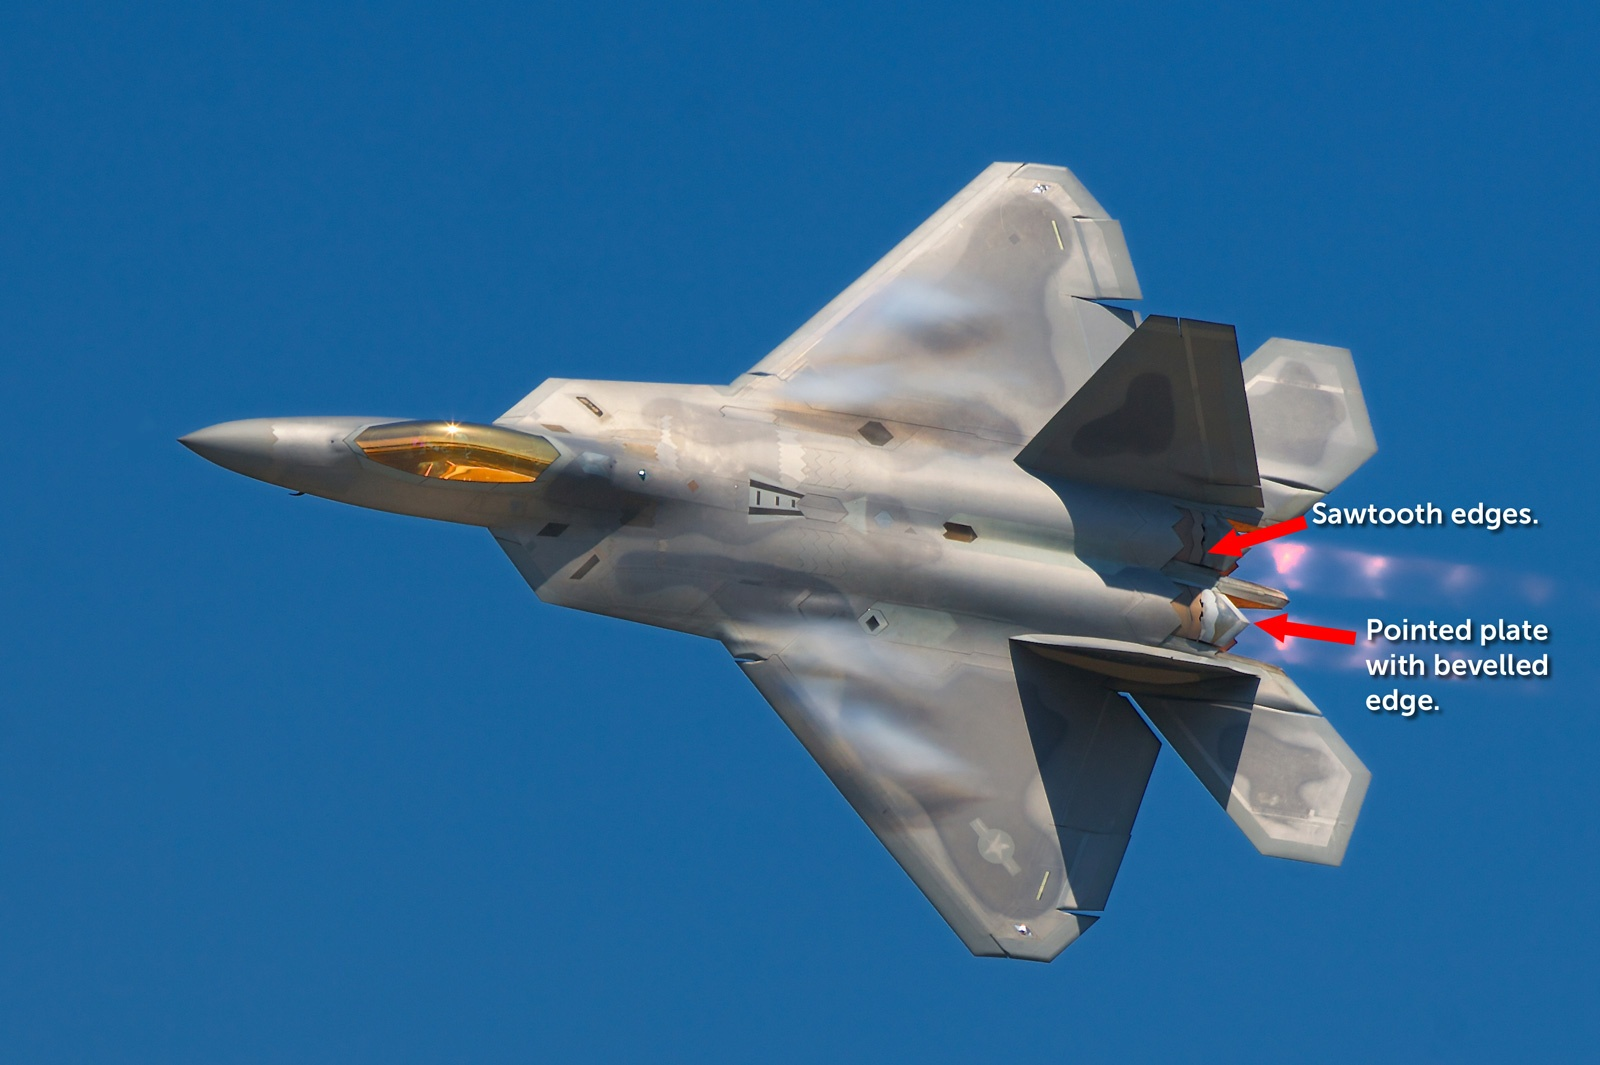 Here's why the F-22 Uses Square Exhaust Nozzles (and F-35, Su-57 and Chinese Stealth Fighters don't)